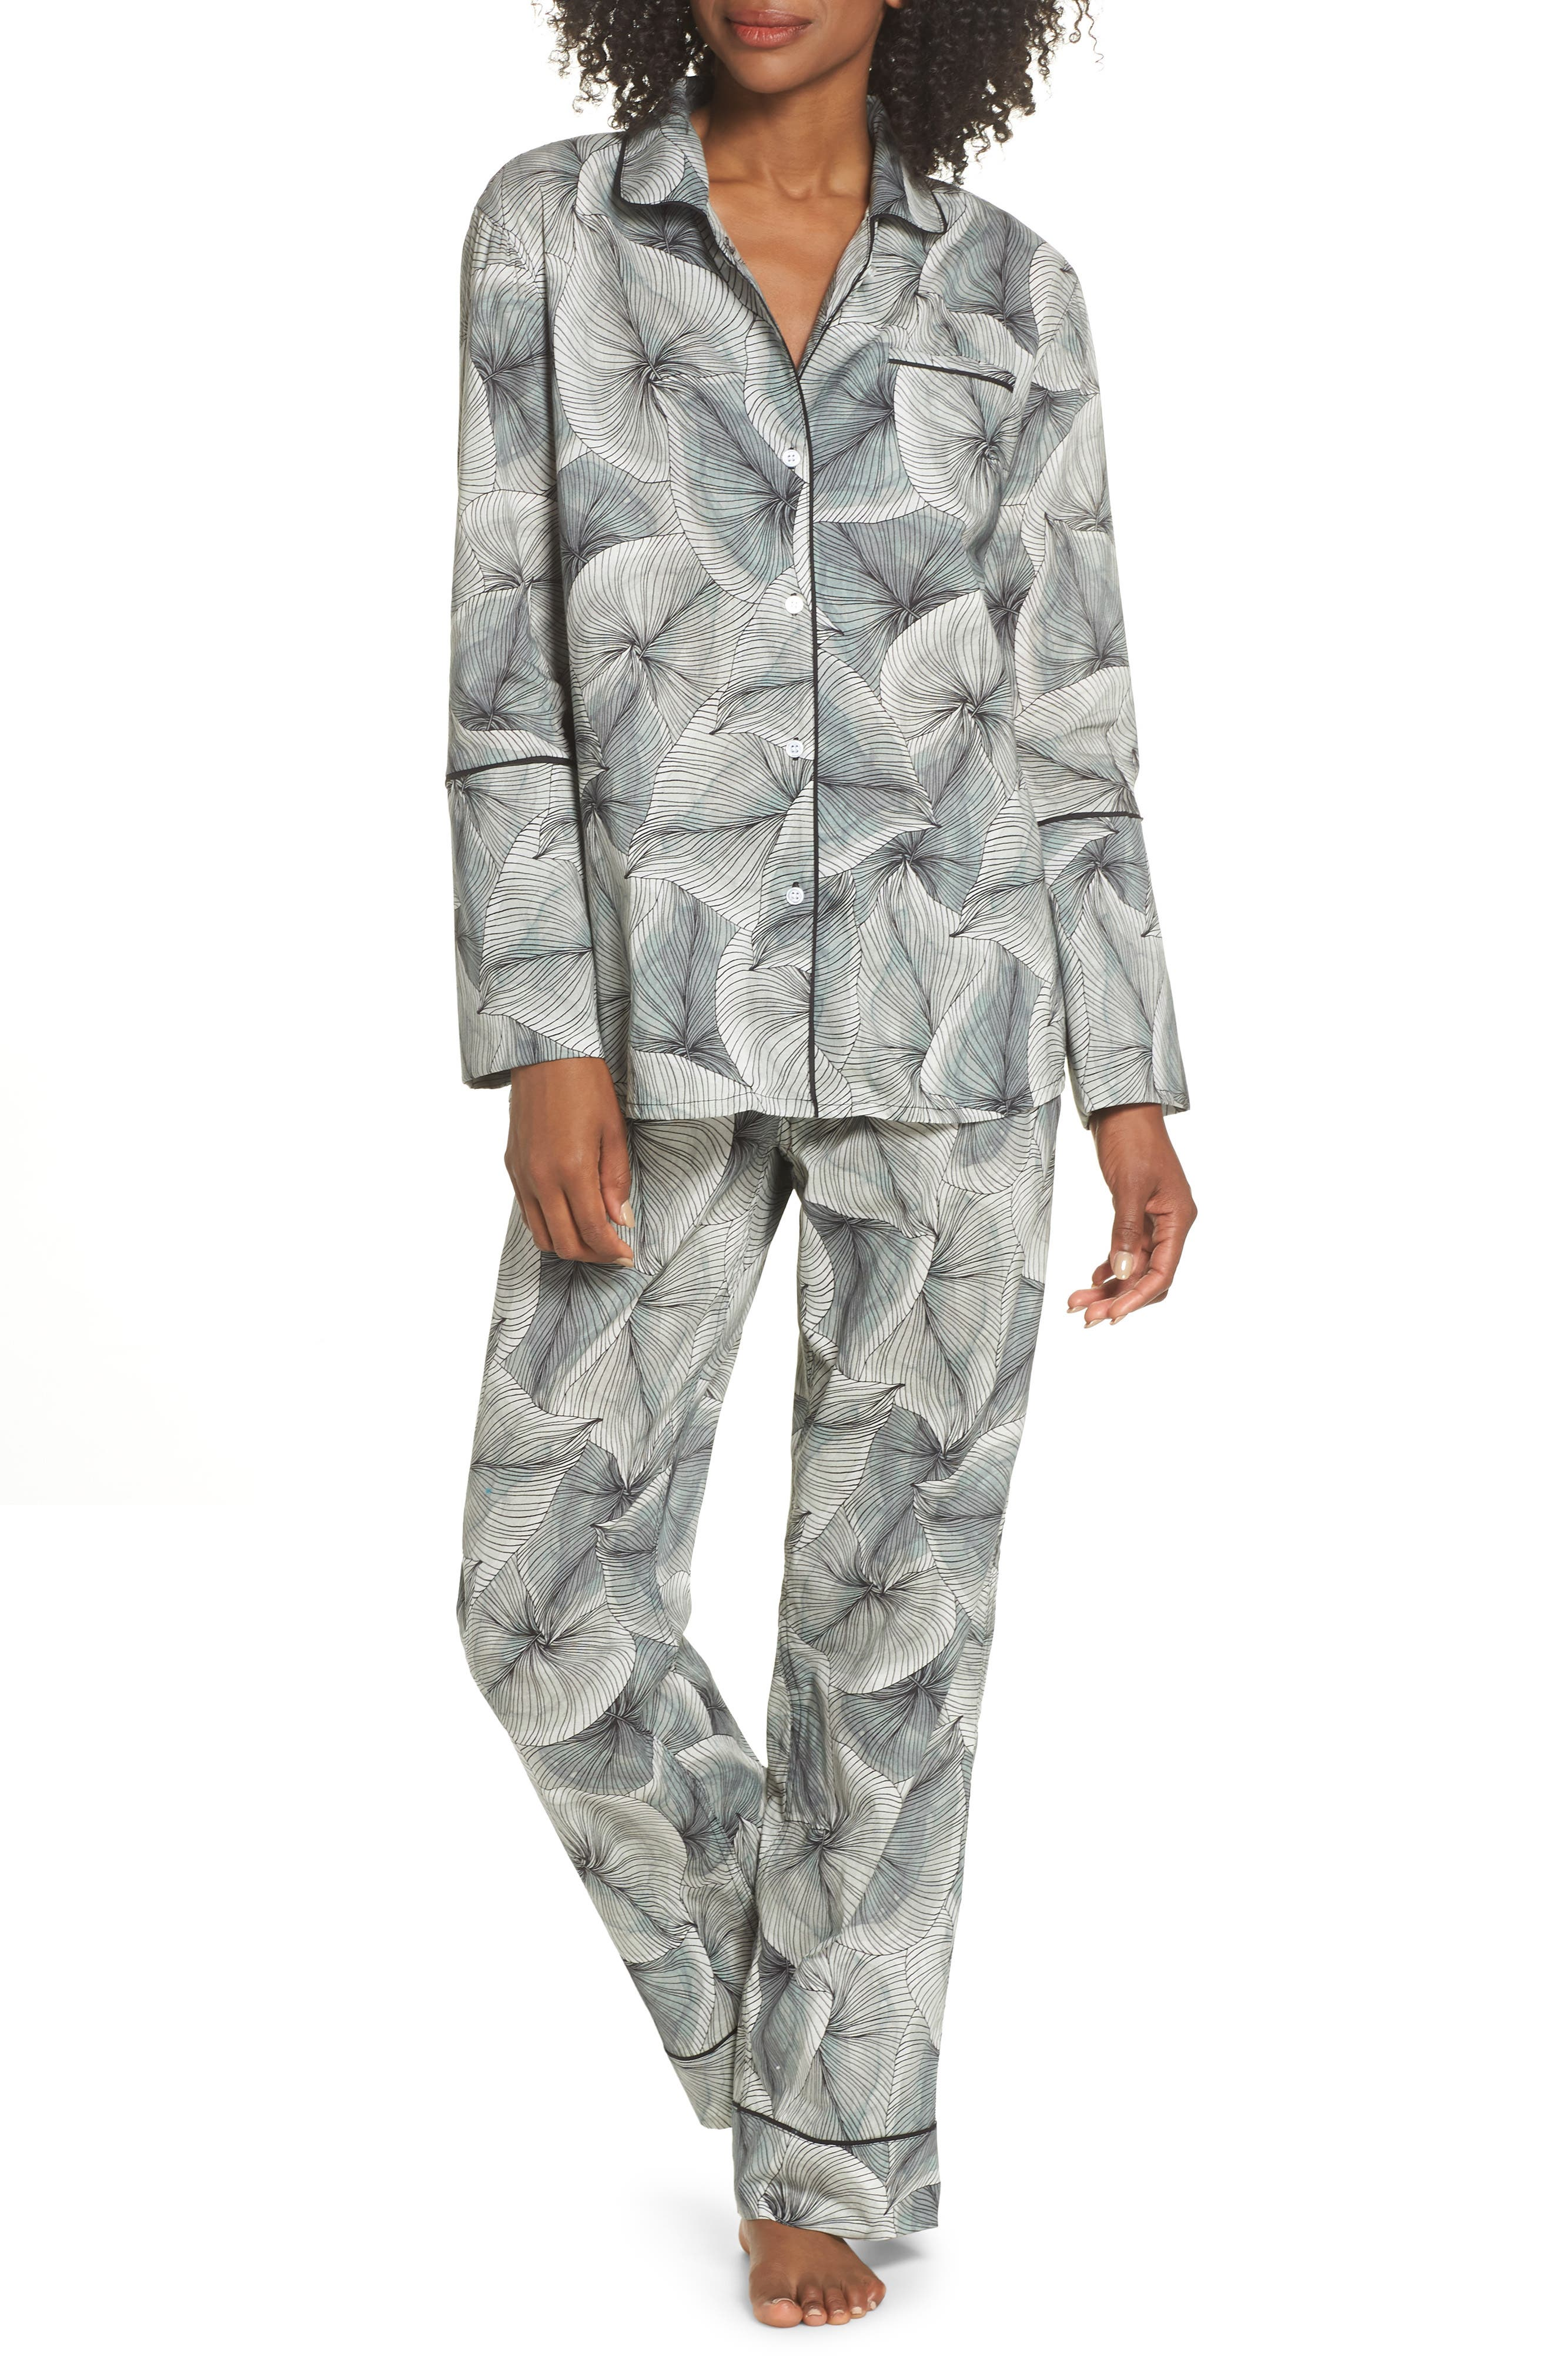 Cotton Voile Pajamas,                             Main thumbnail 1, color,                             LEAF PRINT